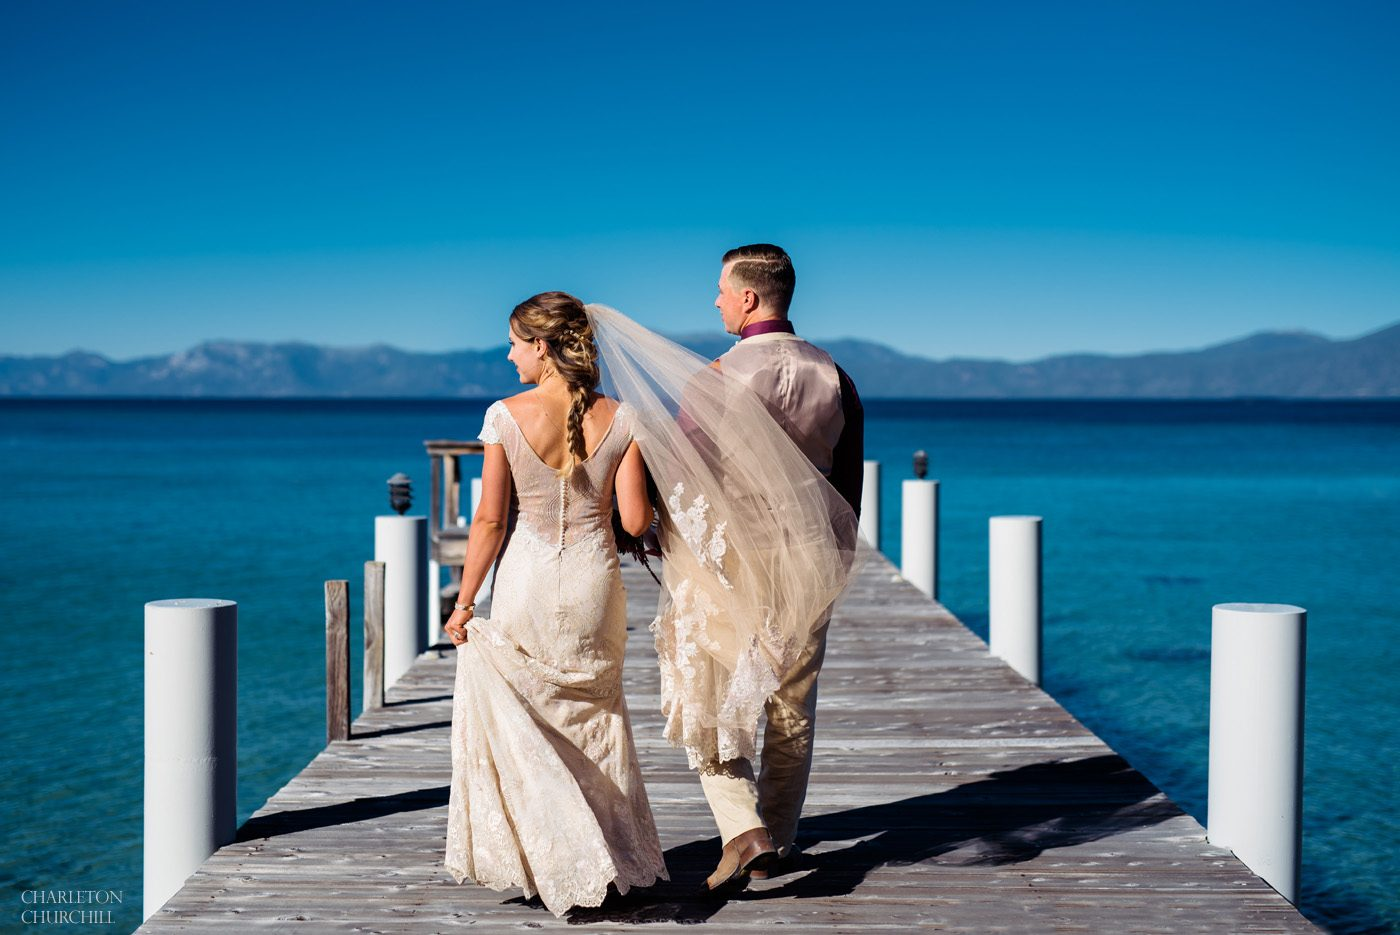 Top Lake Tahoe Wedding Venues Image Of On Dock Holding Hands